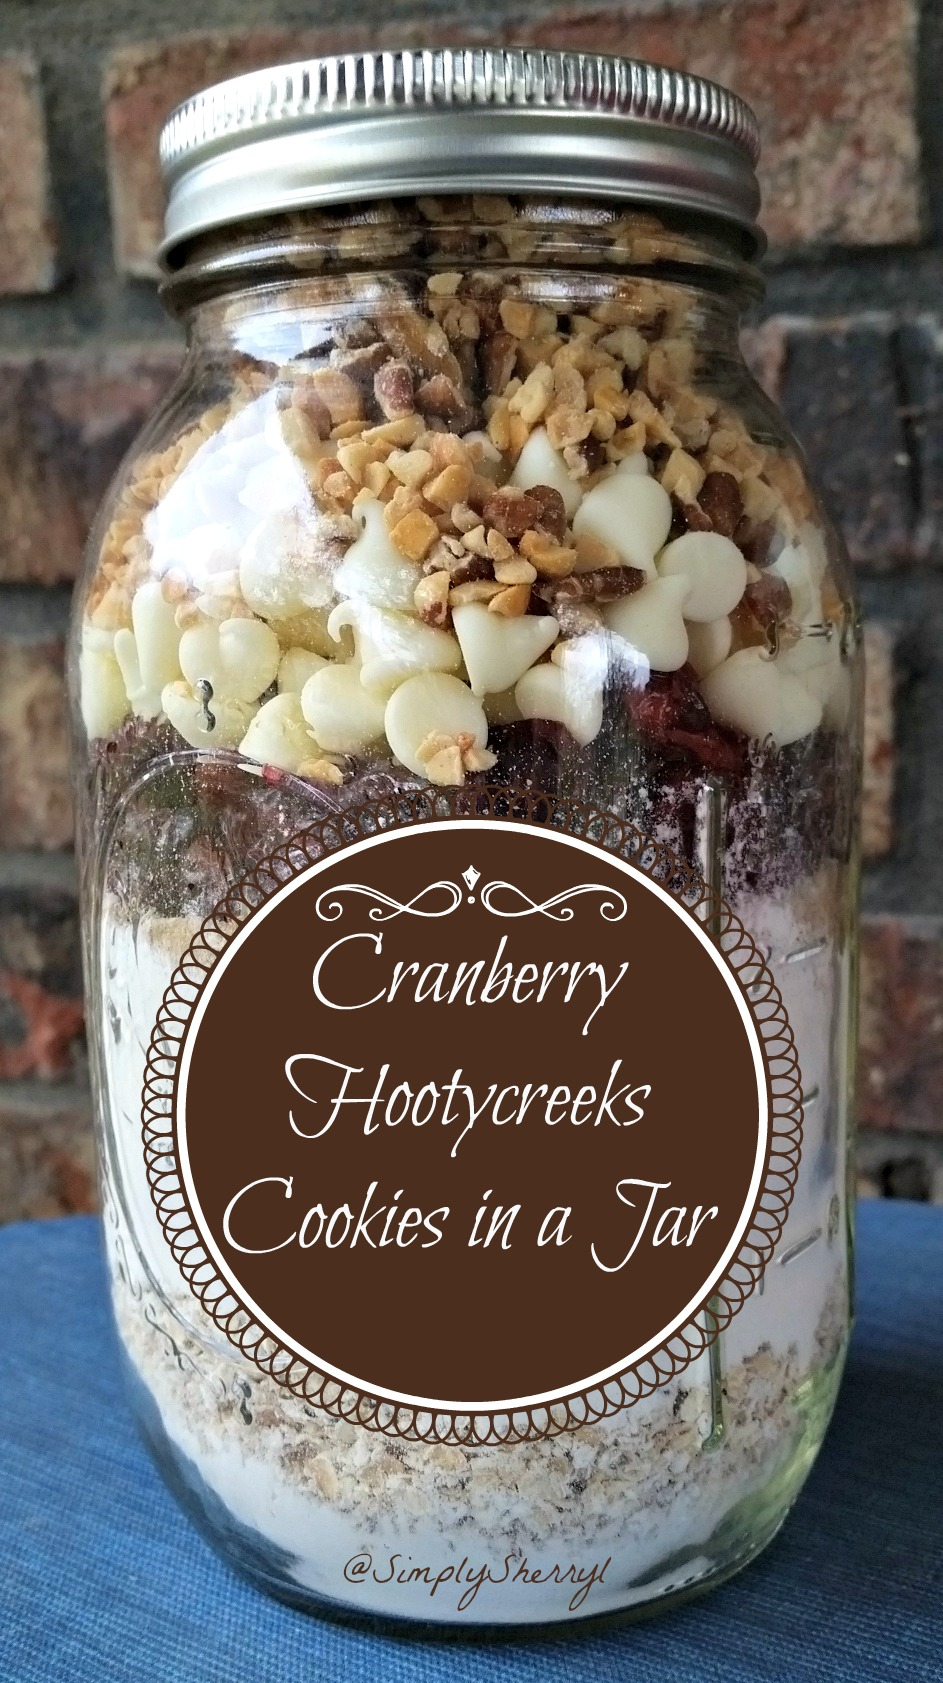 Cranberry Hootycreeks Cookies in a Jar {Free Printable}